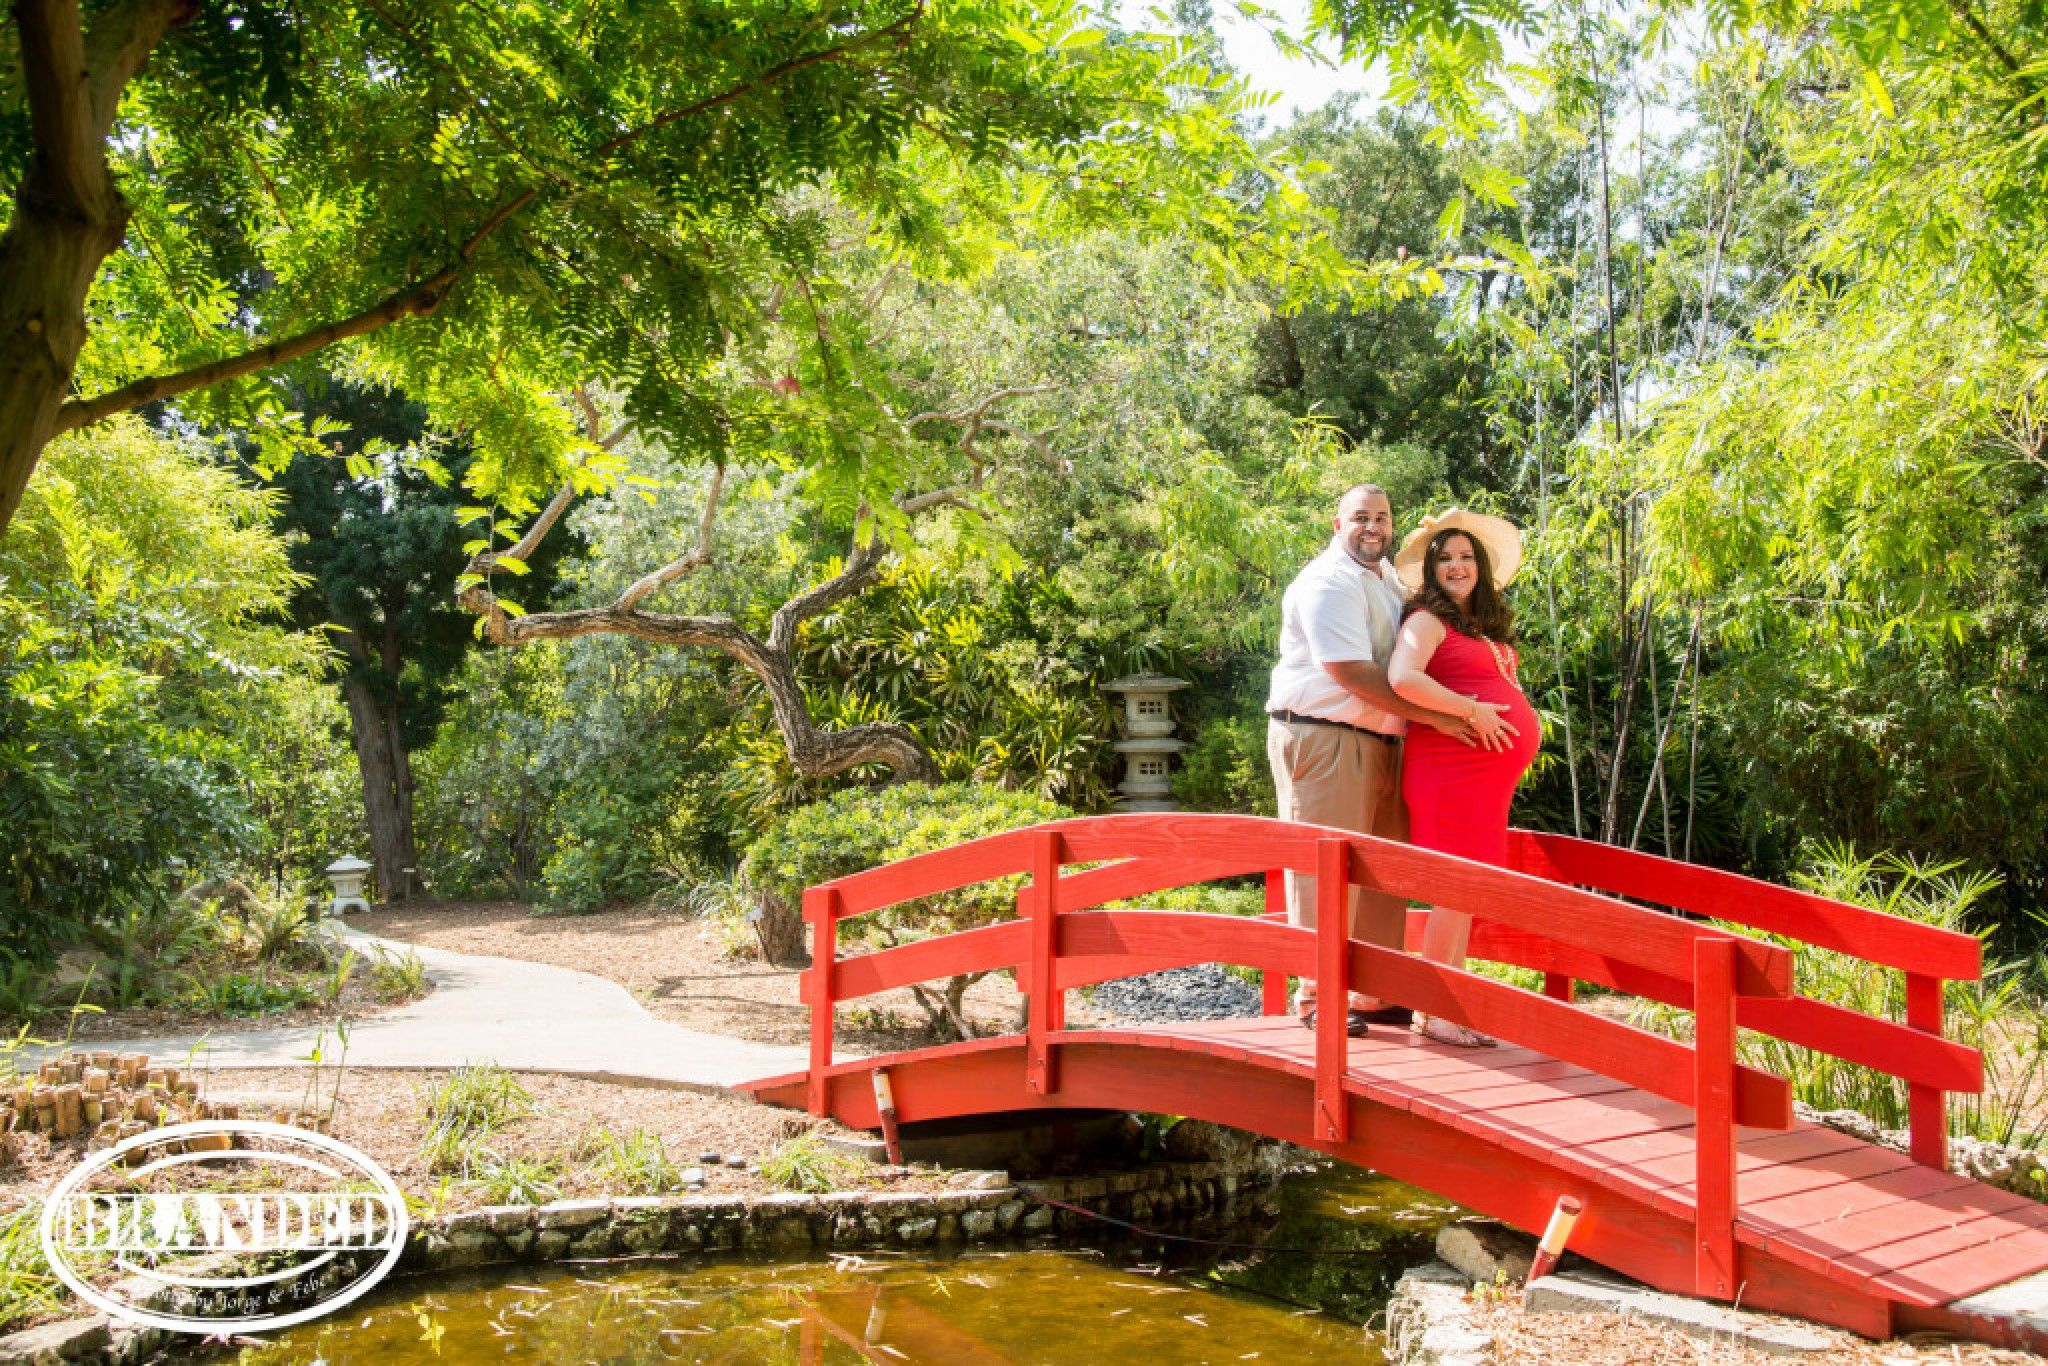 Attrayant Garden Theme Maternity Photography Session   Miami Beach Botanical Garden